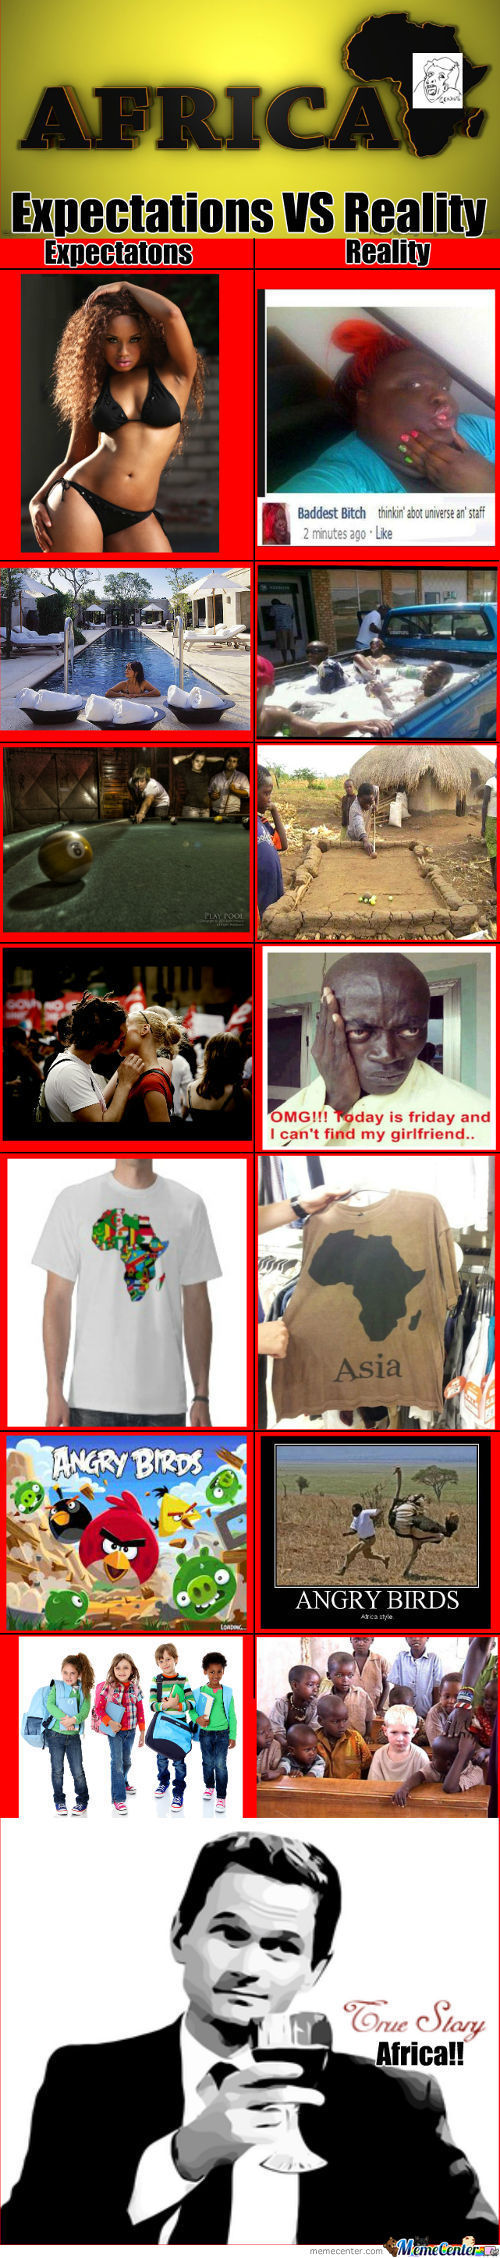 Expectations Vs Reality Africa!!!